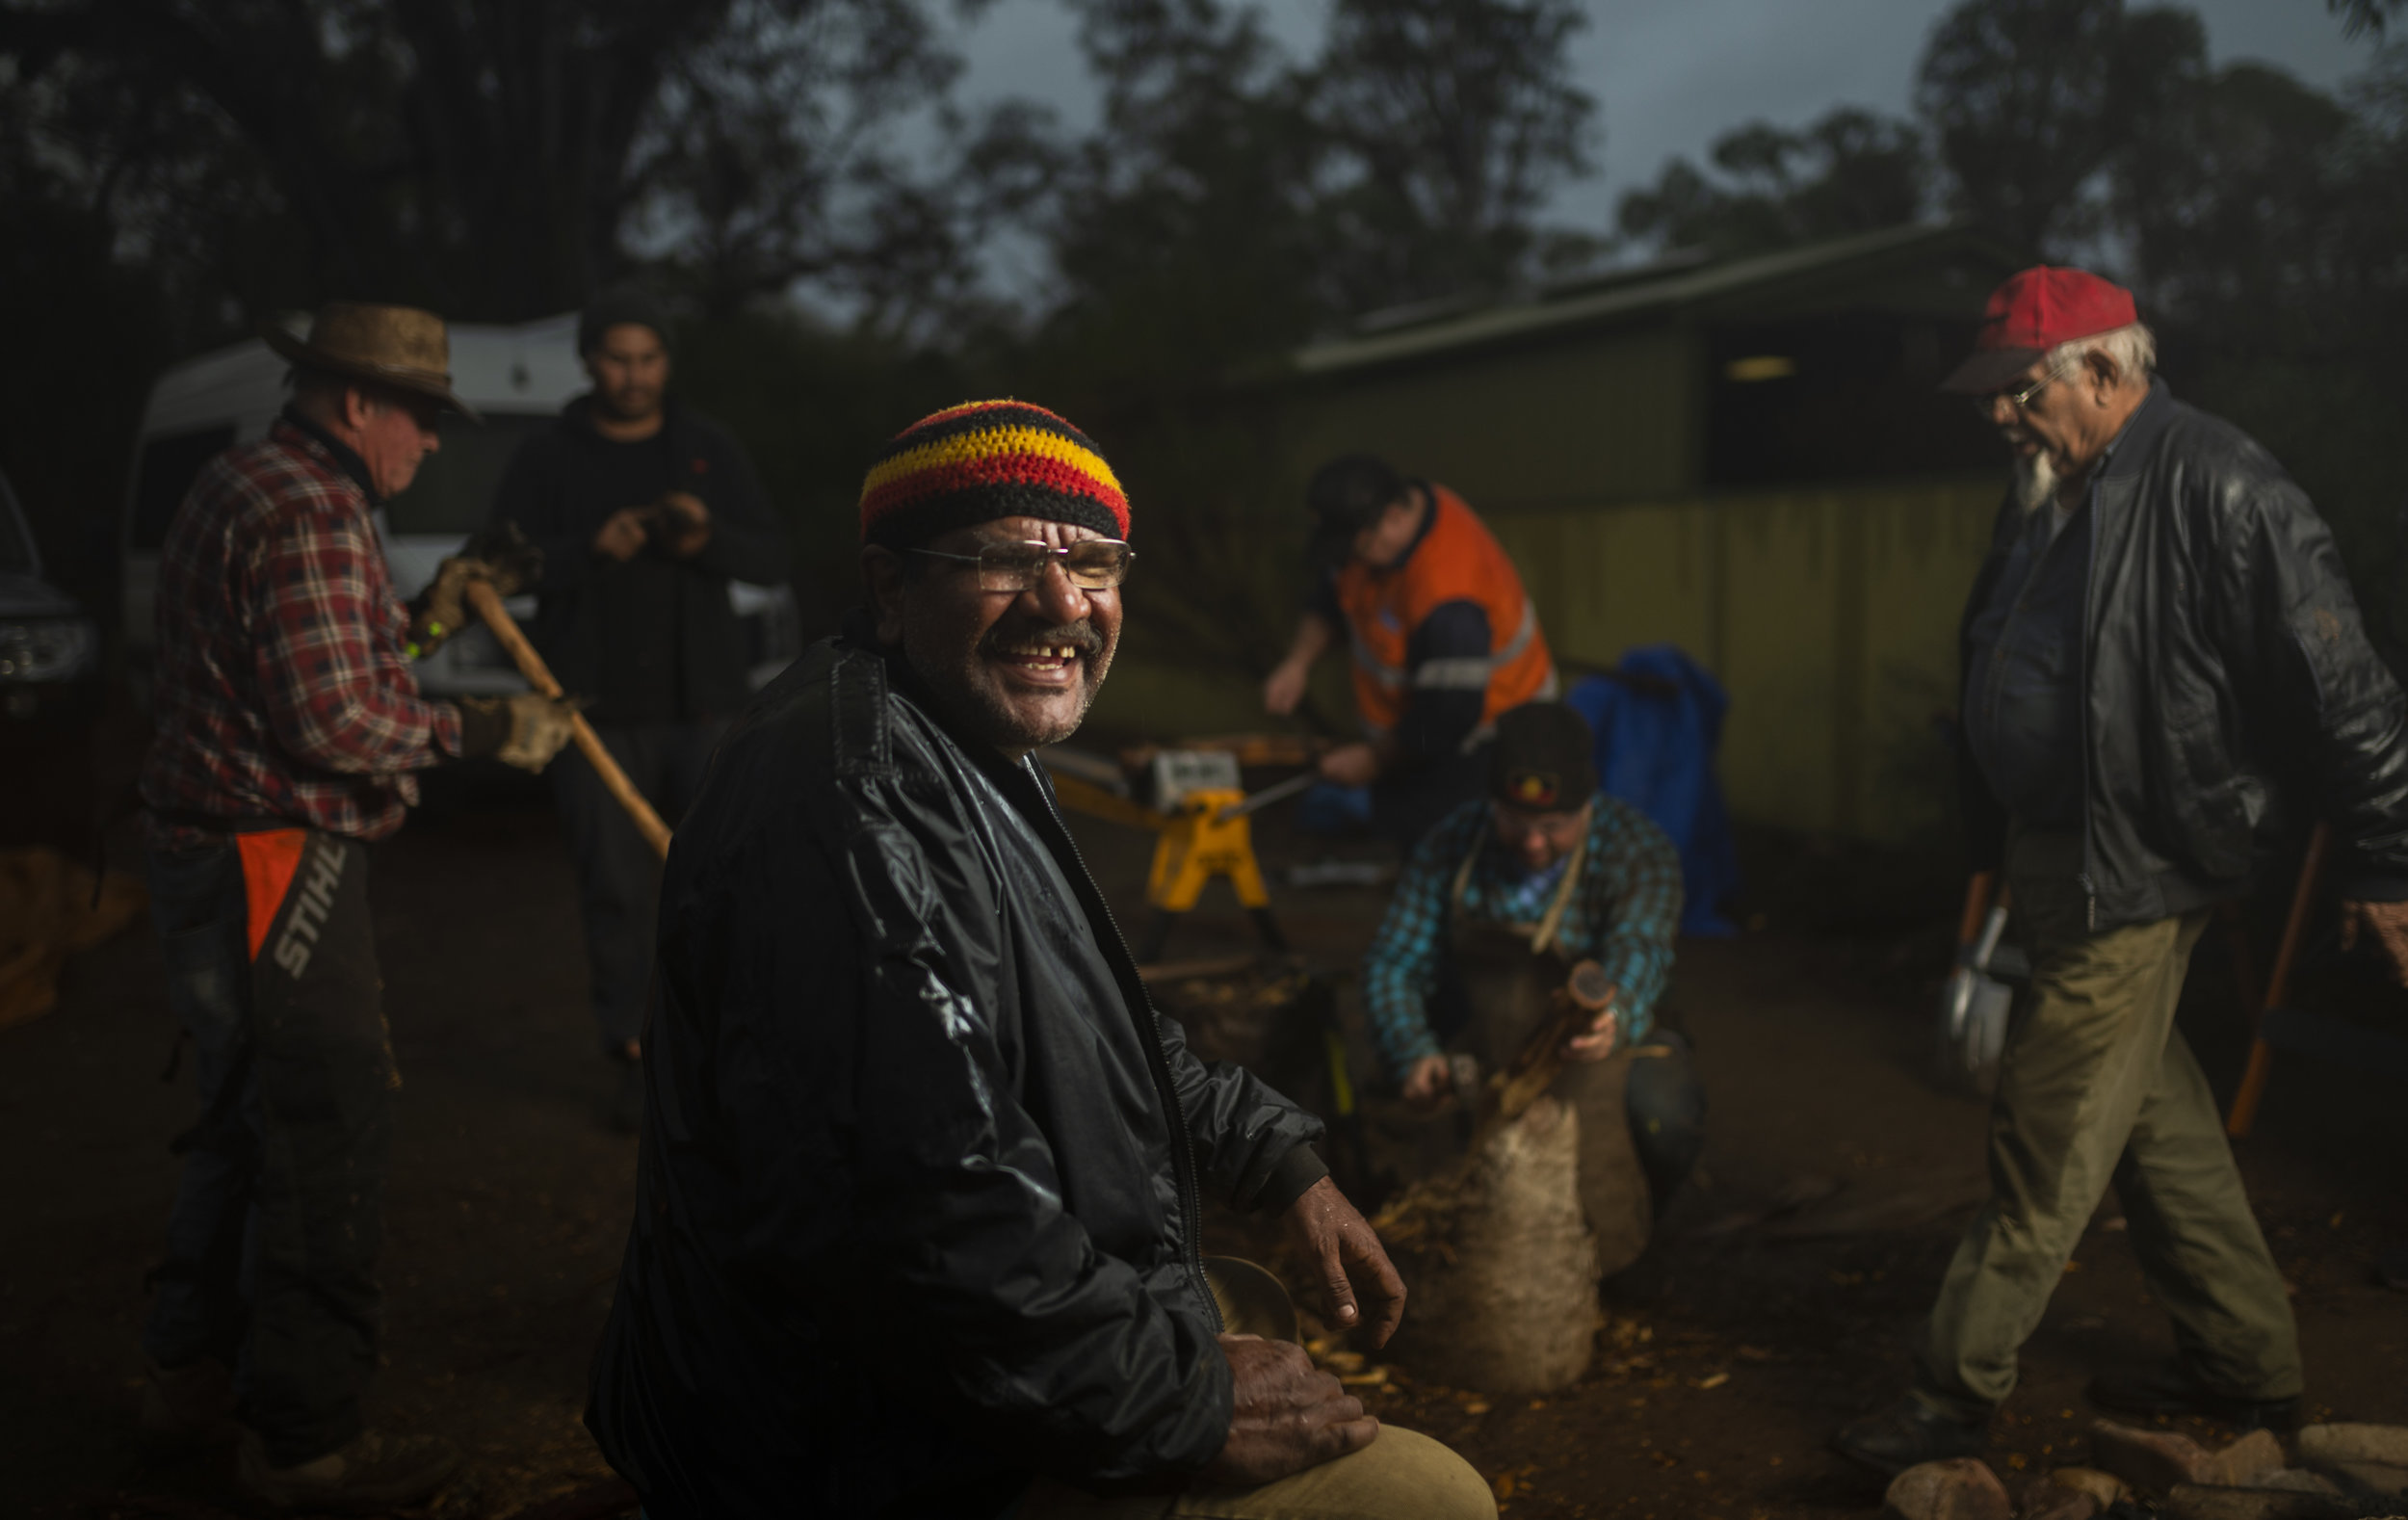 Donny McKenzie and carvers at Mambray Creek carving camp, 2018. Photo by Dave Laslett